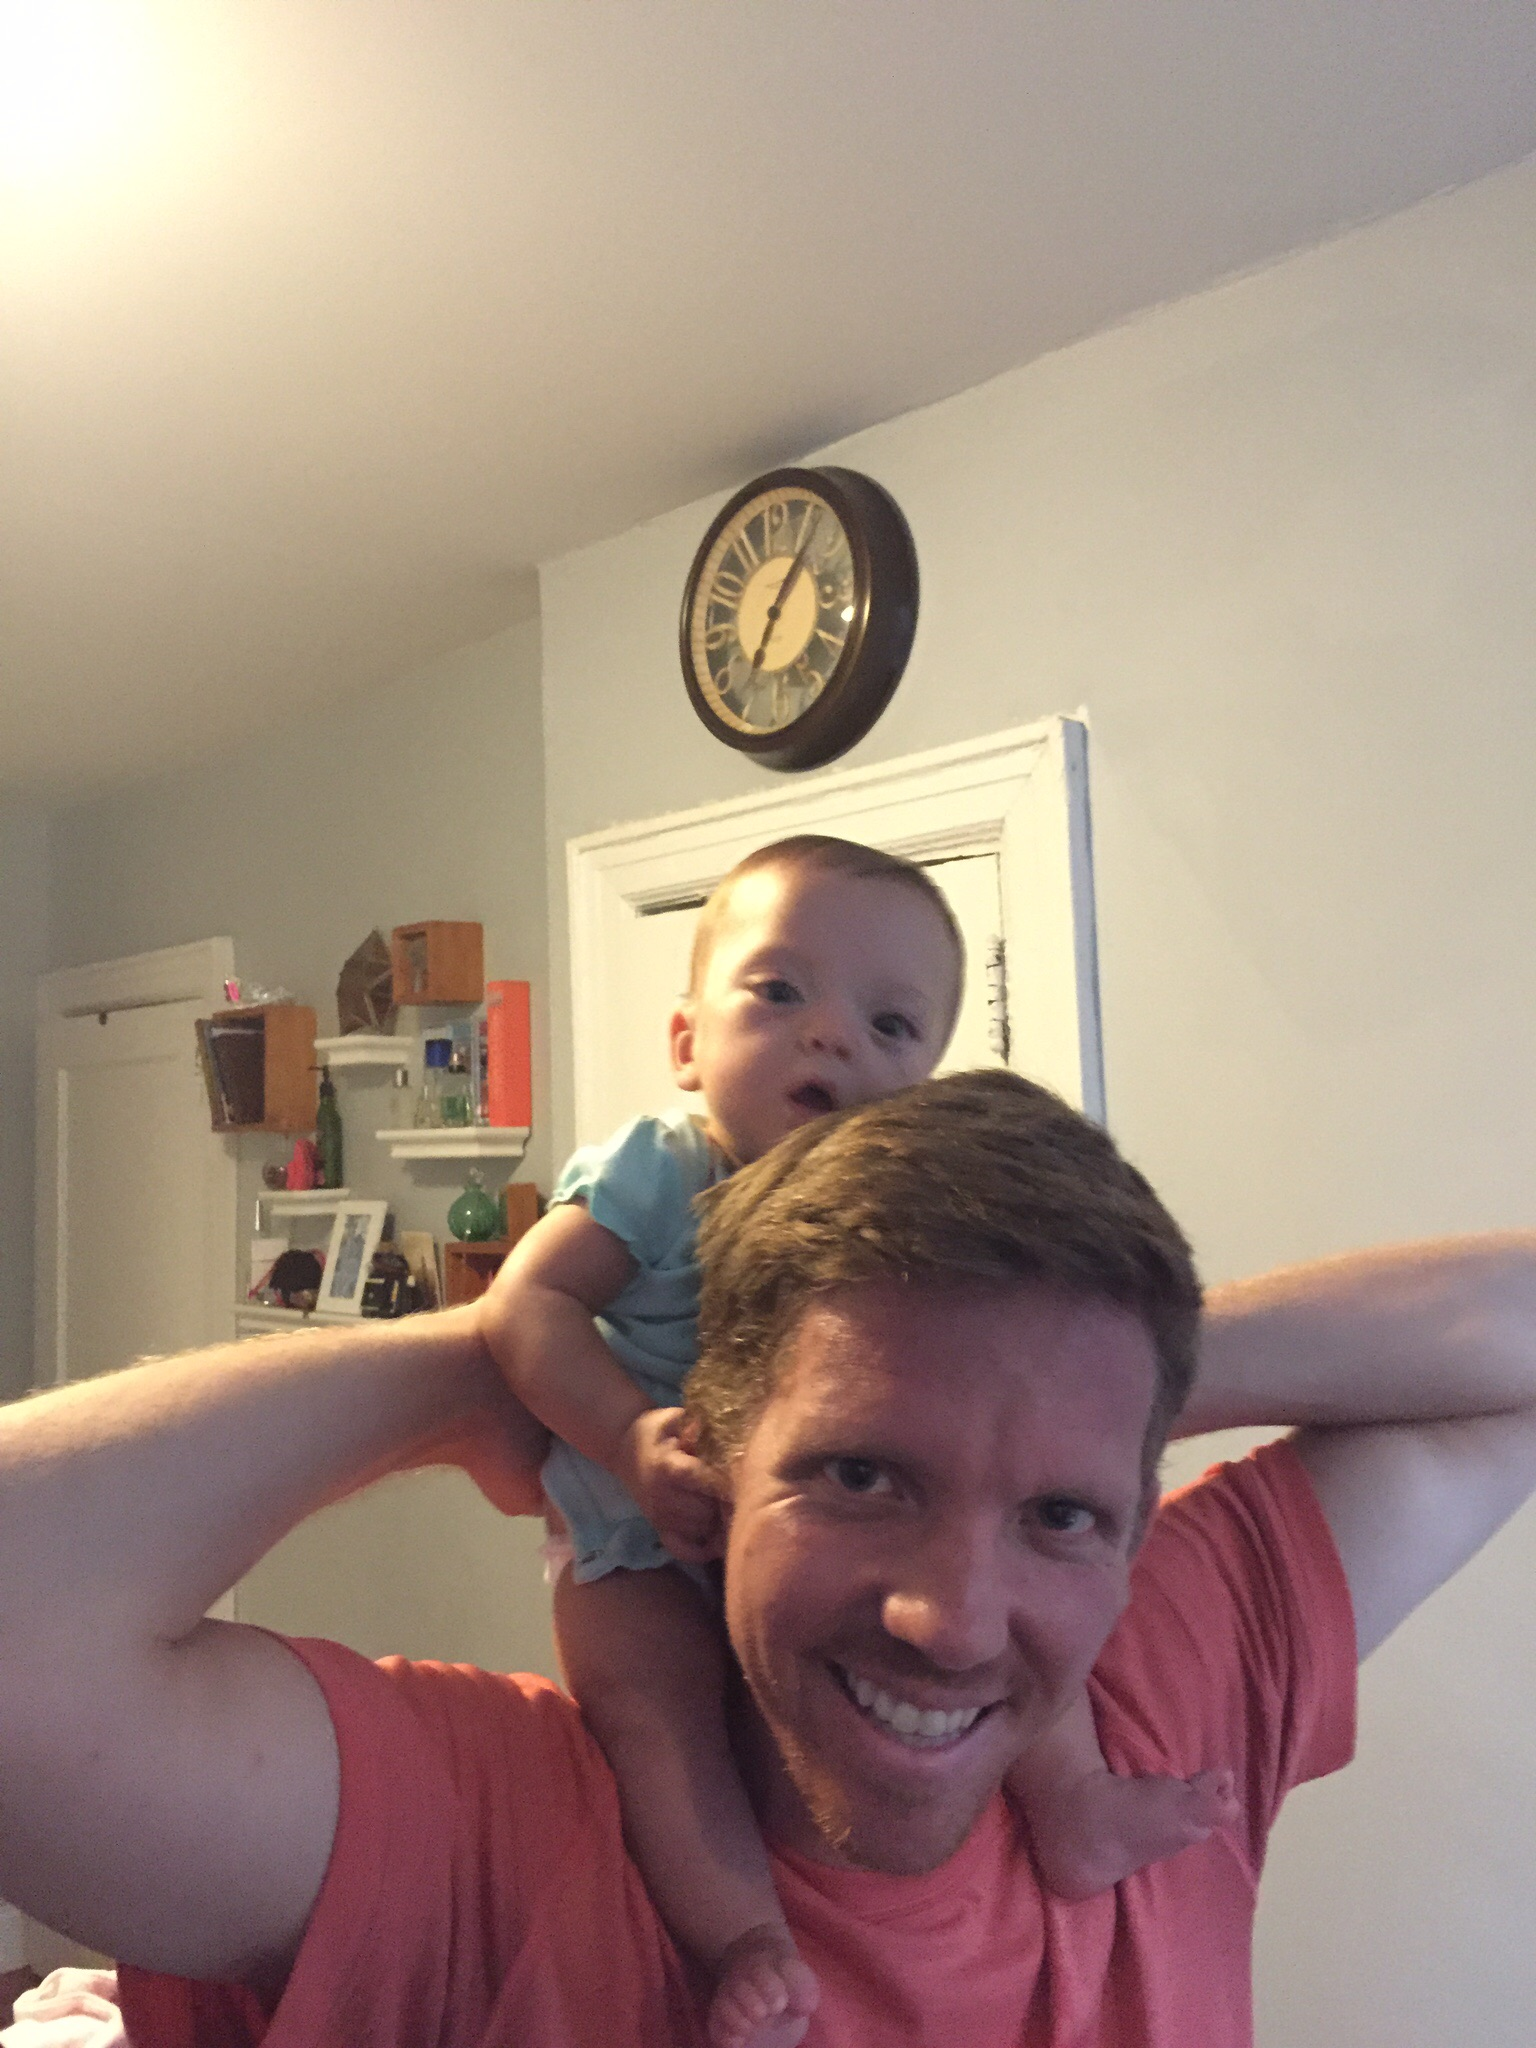 First piggy back ride! One of those little celebrations ;)